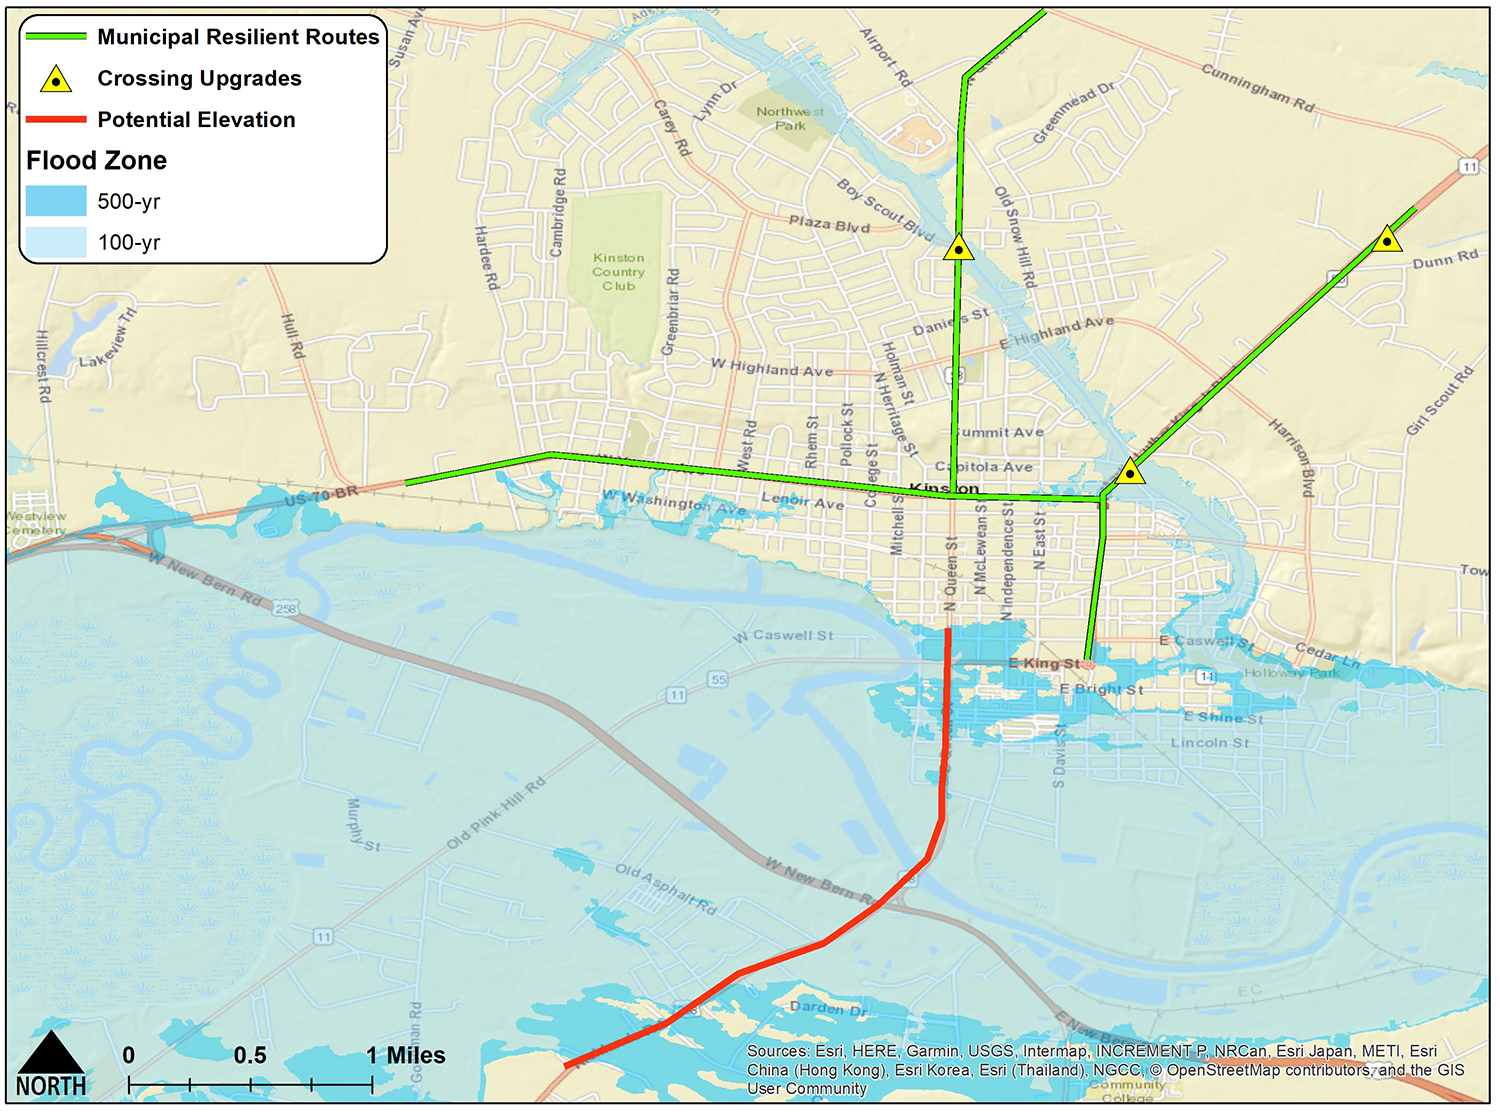 Examples of resilient routes in Kinston. Credit: N.C. Sea Grant/NC State Department of Biological & Agricultural Engineering